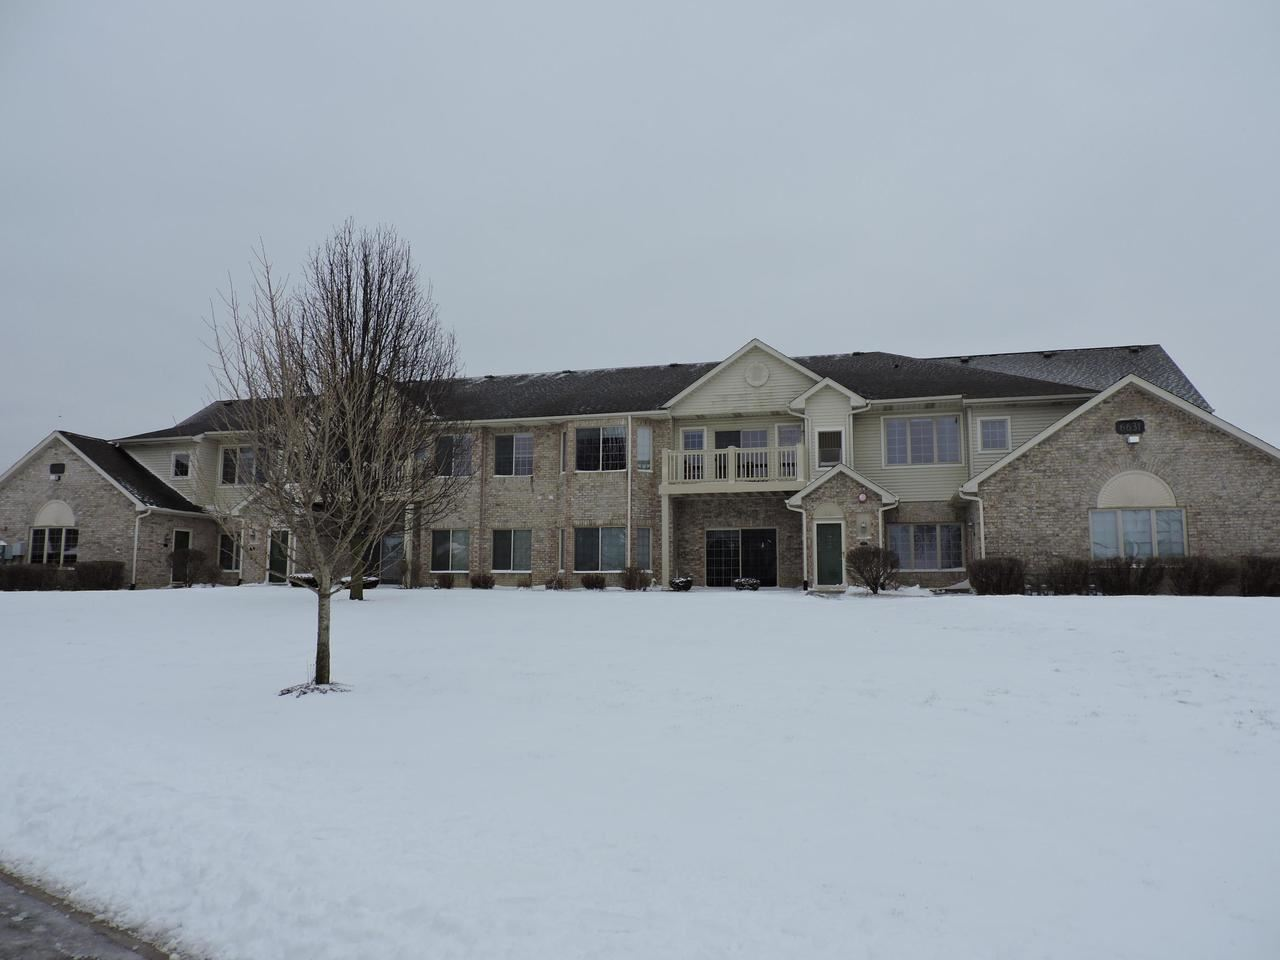 6631 Spring Hill Dr #67, Mount Pleasant, WI 53406 - MLS#: 1671990